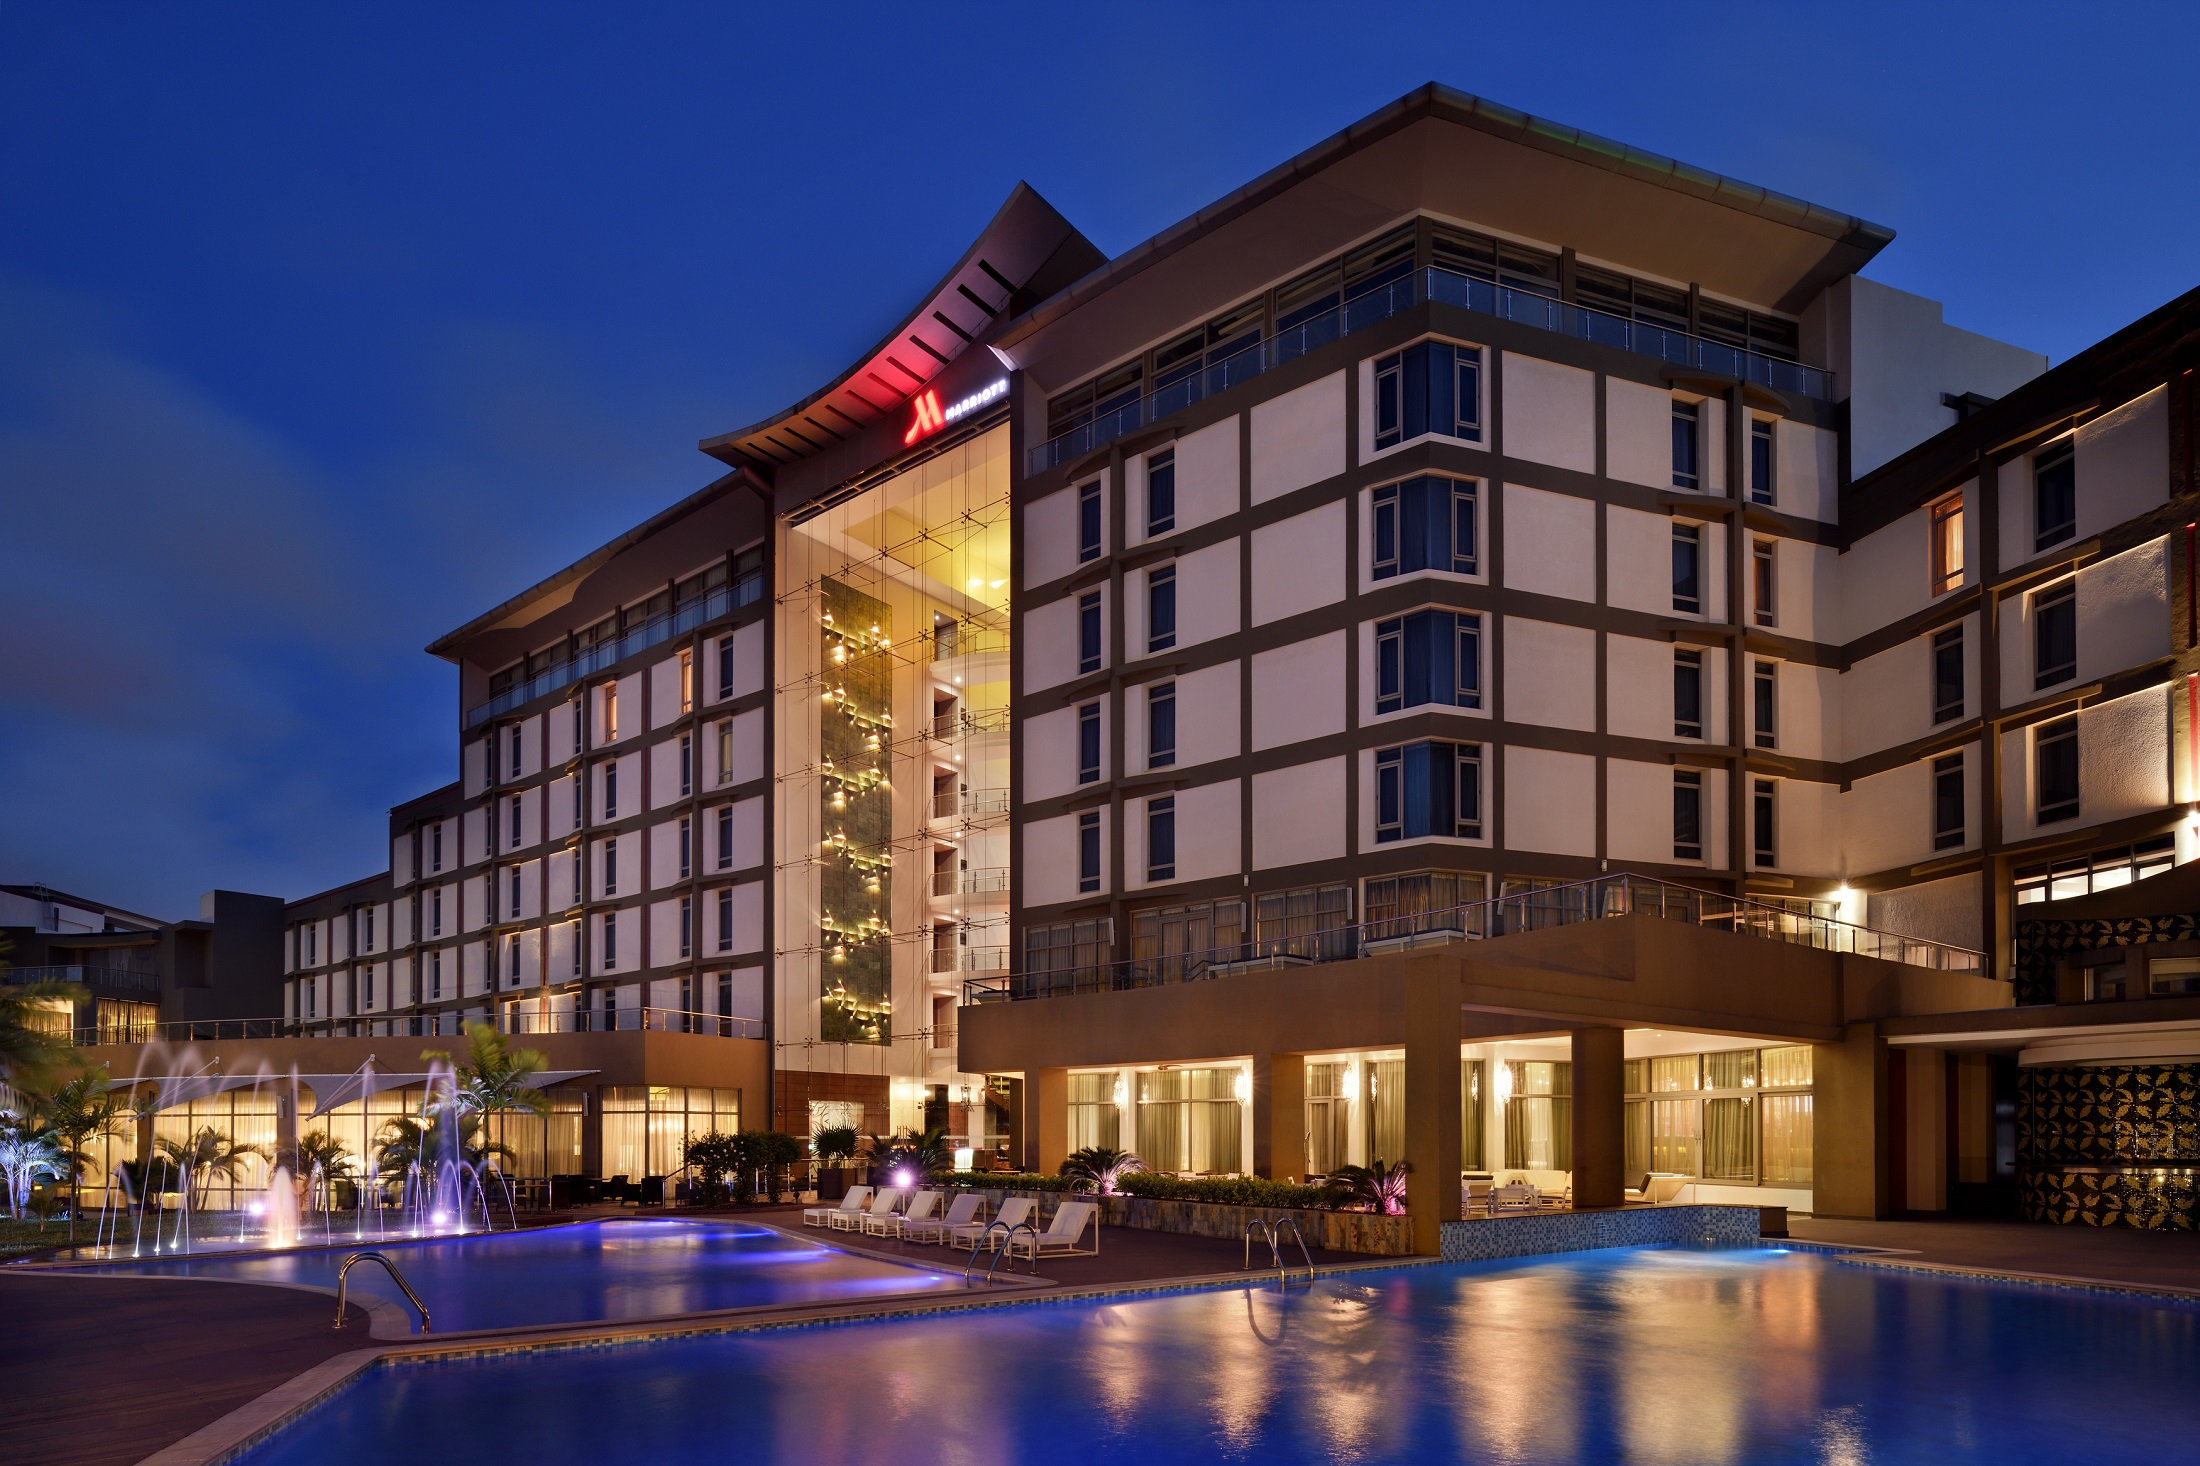 Marriott International to increase its Africa hotels by 50 percent by 2023